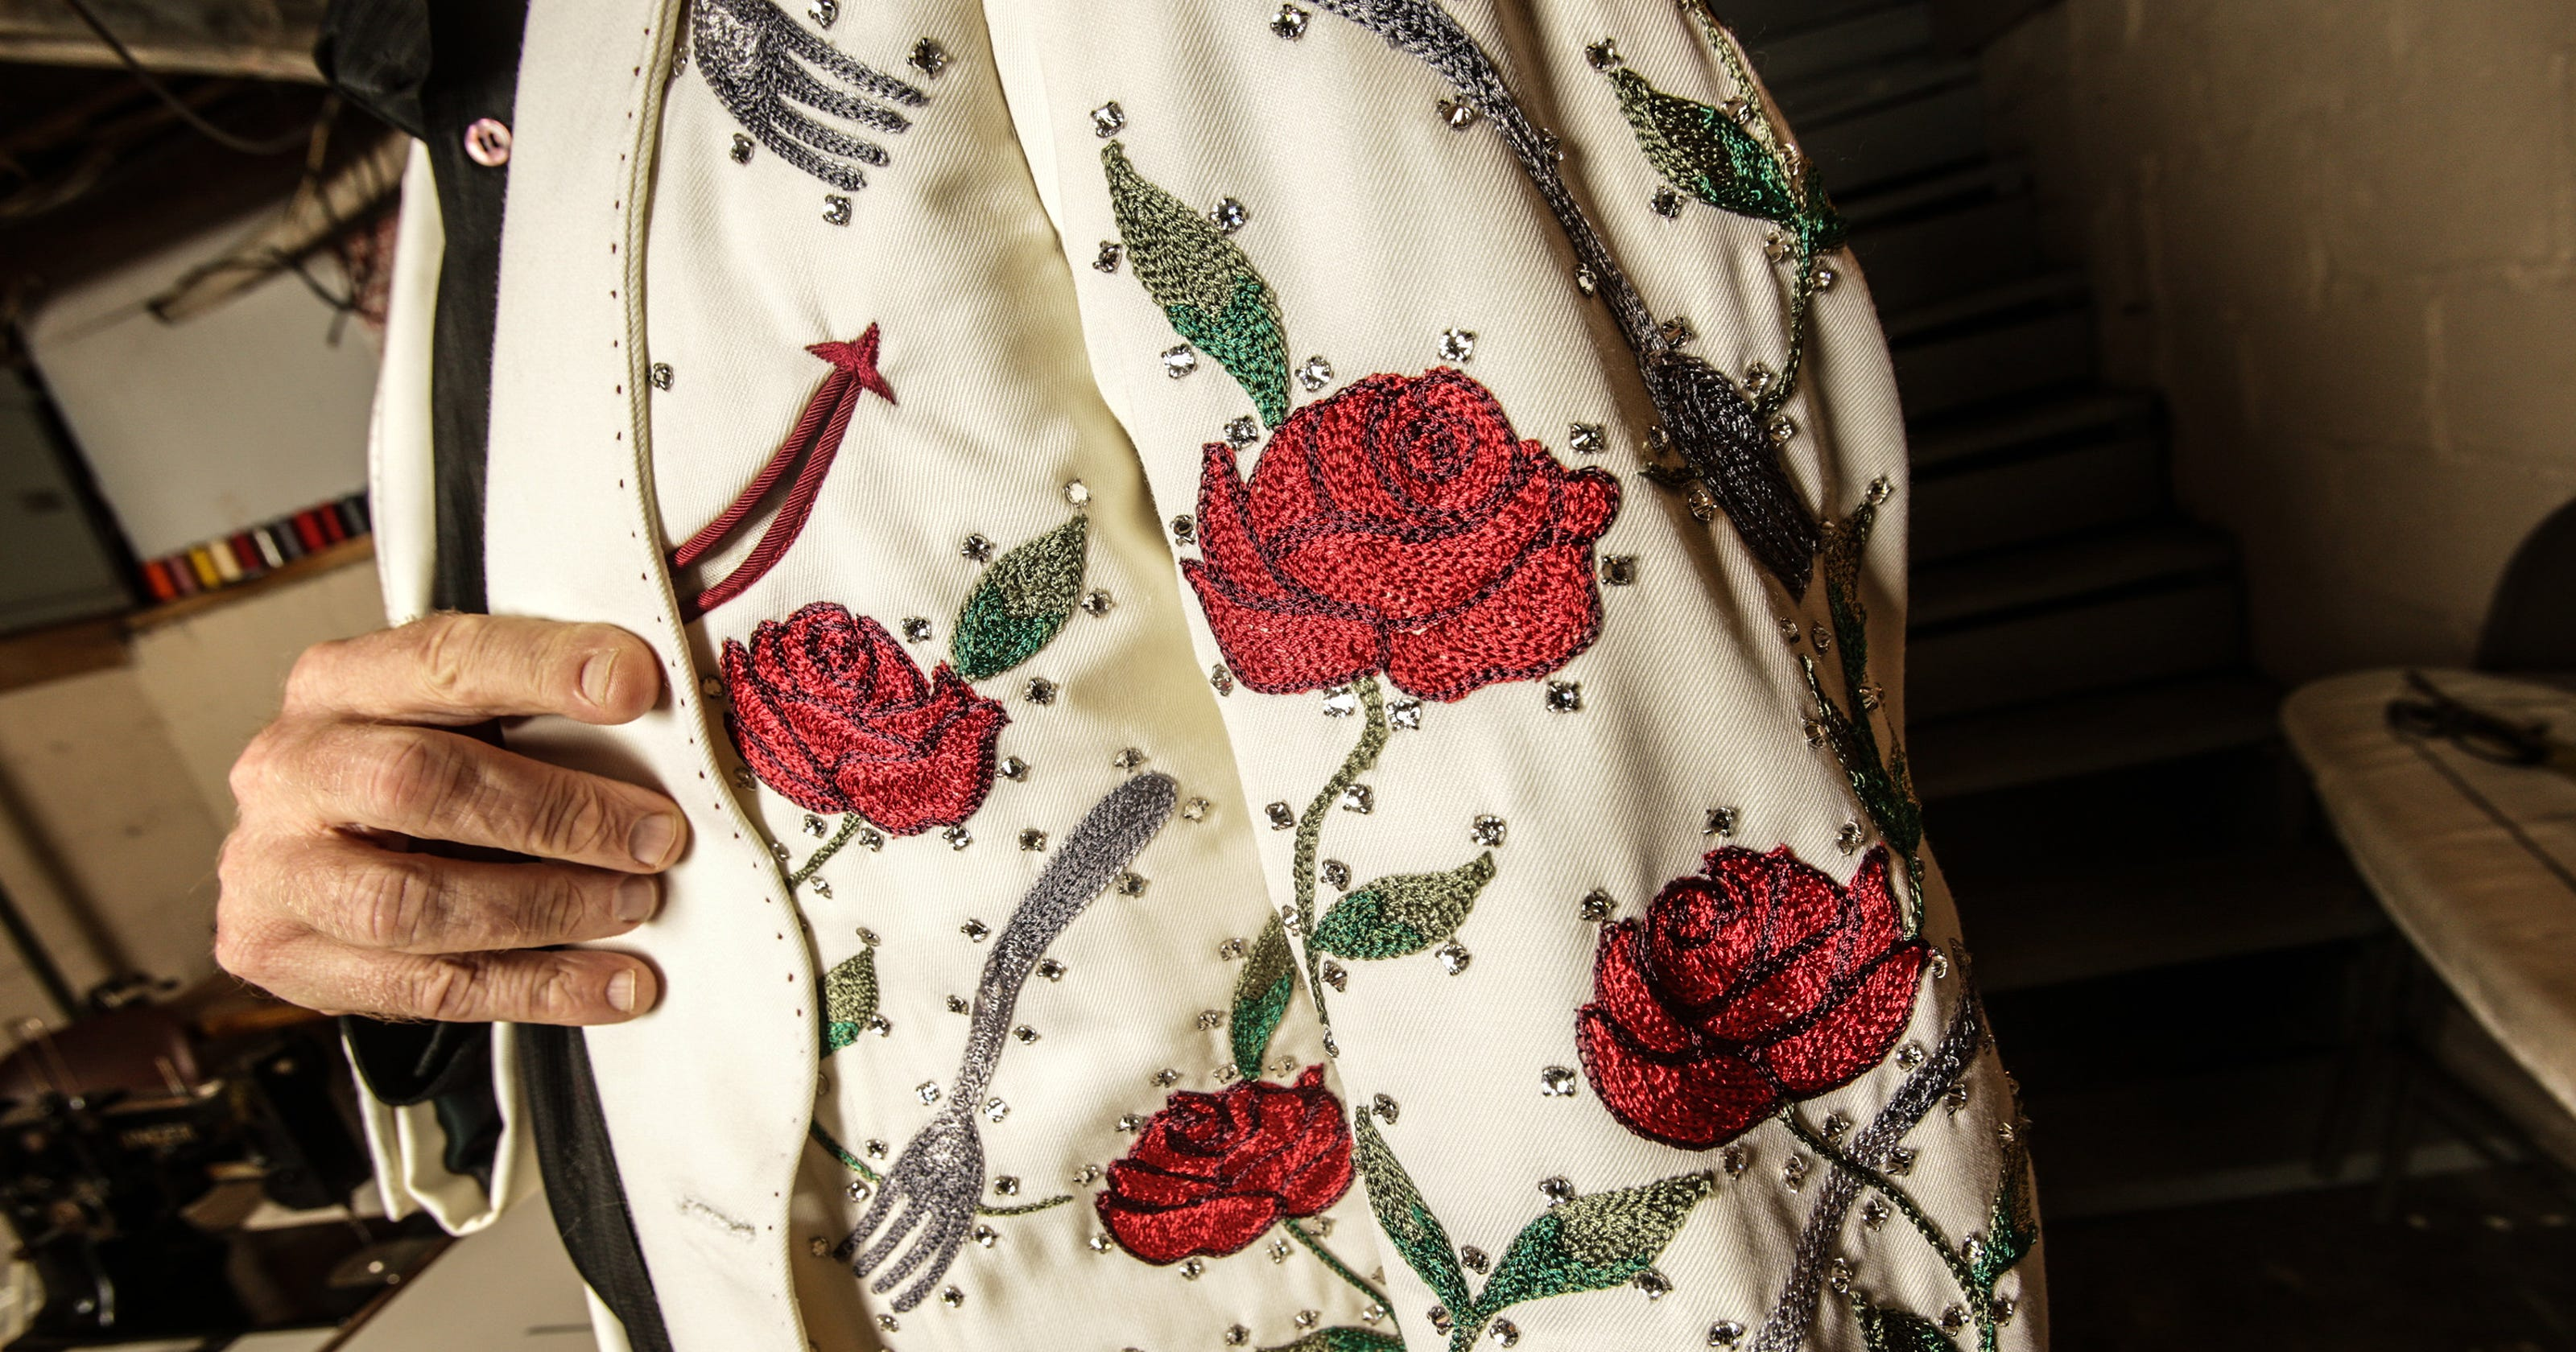 Indys Rhinestone Cowboy Suit Is Back For Tonic Ball